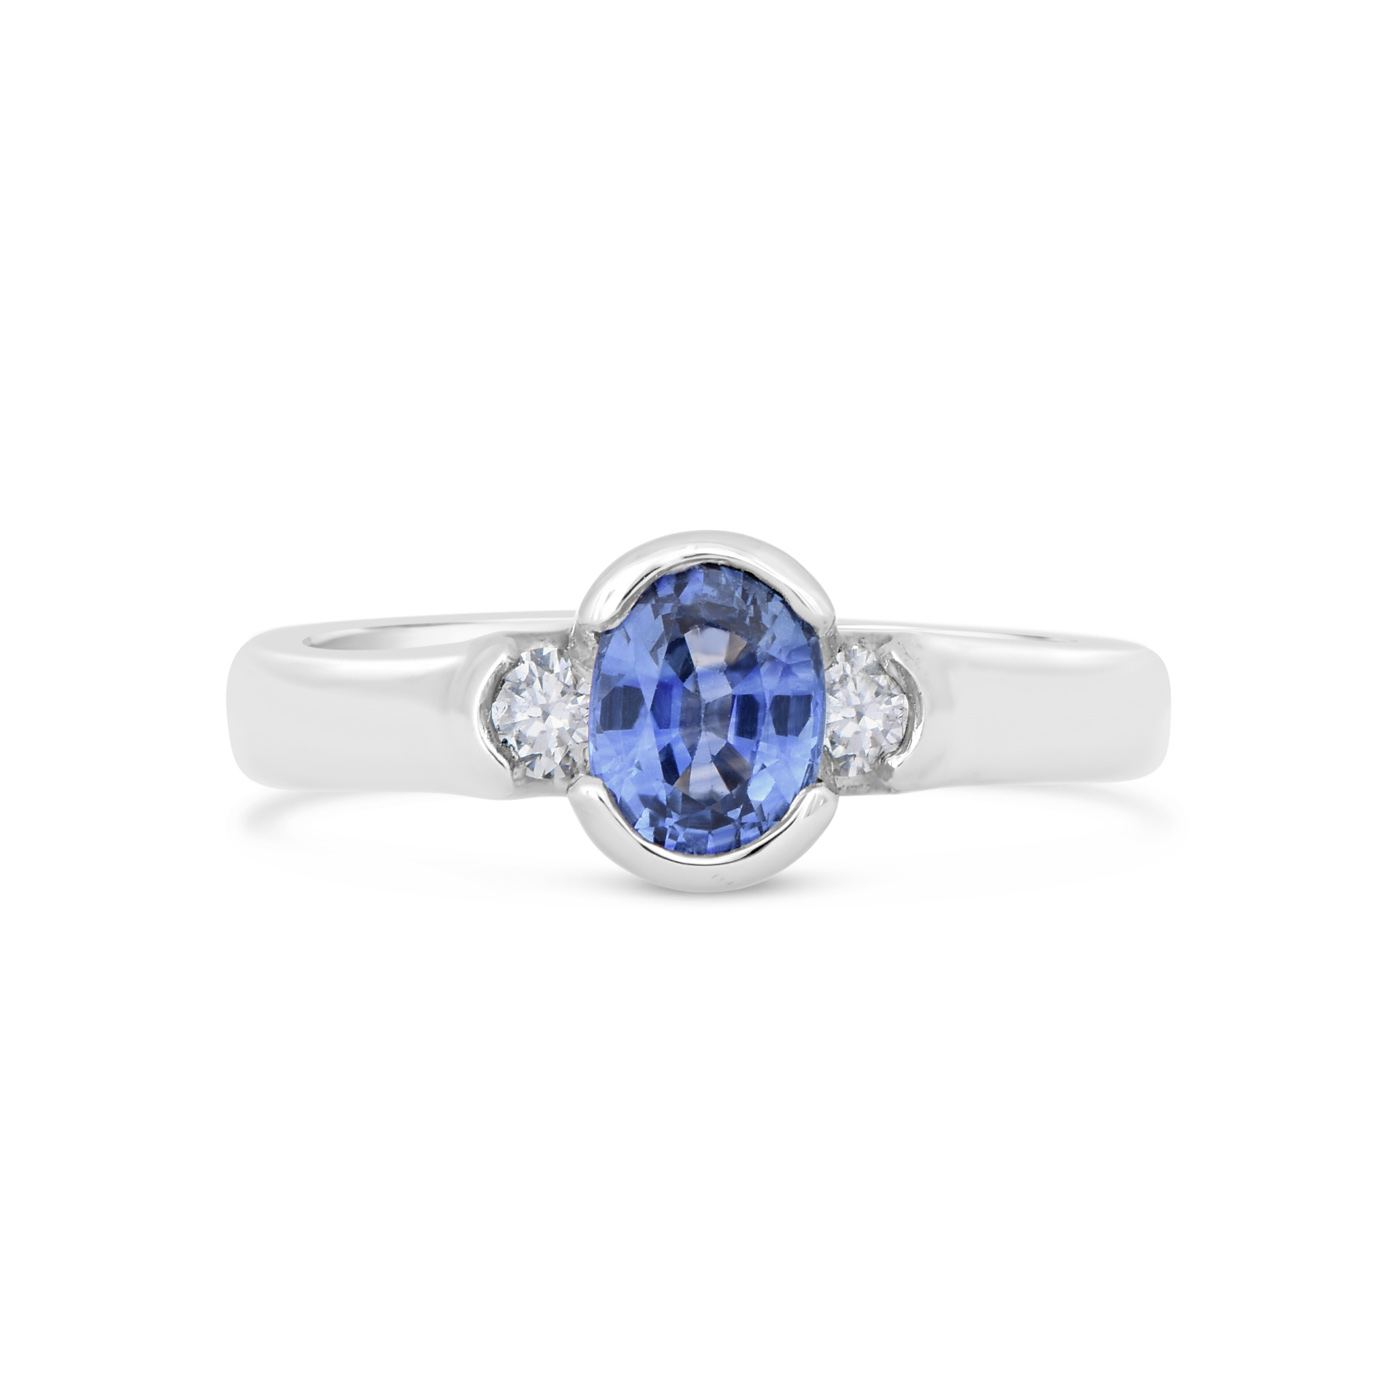 Oval sapphire and diamond ring wr0265 dejonghe original for Sapphire studios jewelry reviews